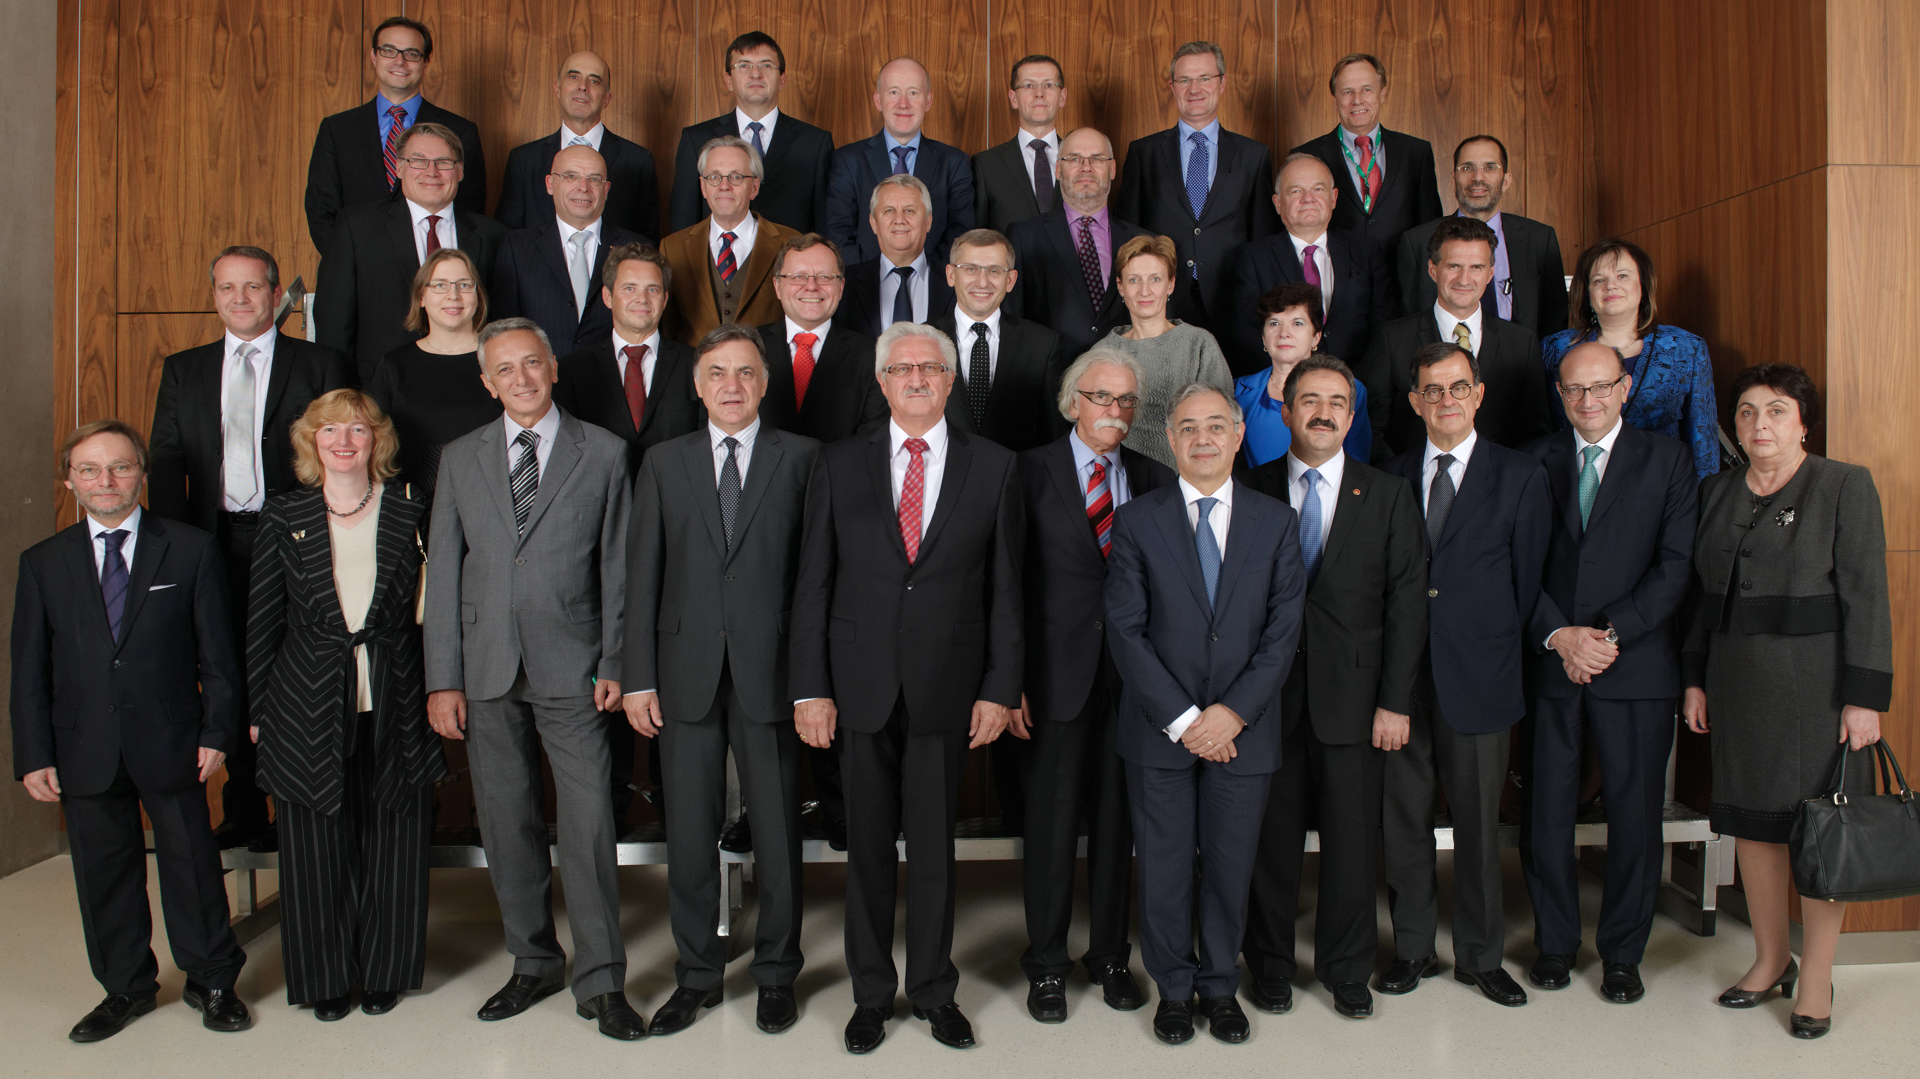 The Heads of the Supreme Audit Institutions (SAIs) of the 28 EU Member States and the European Court of Auditors (ECA) met in Luxembourg on 15-16 October 2014